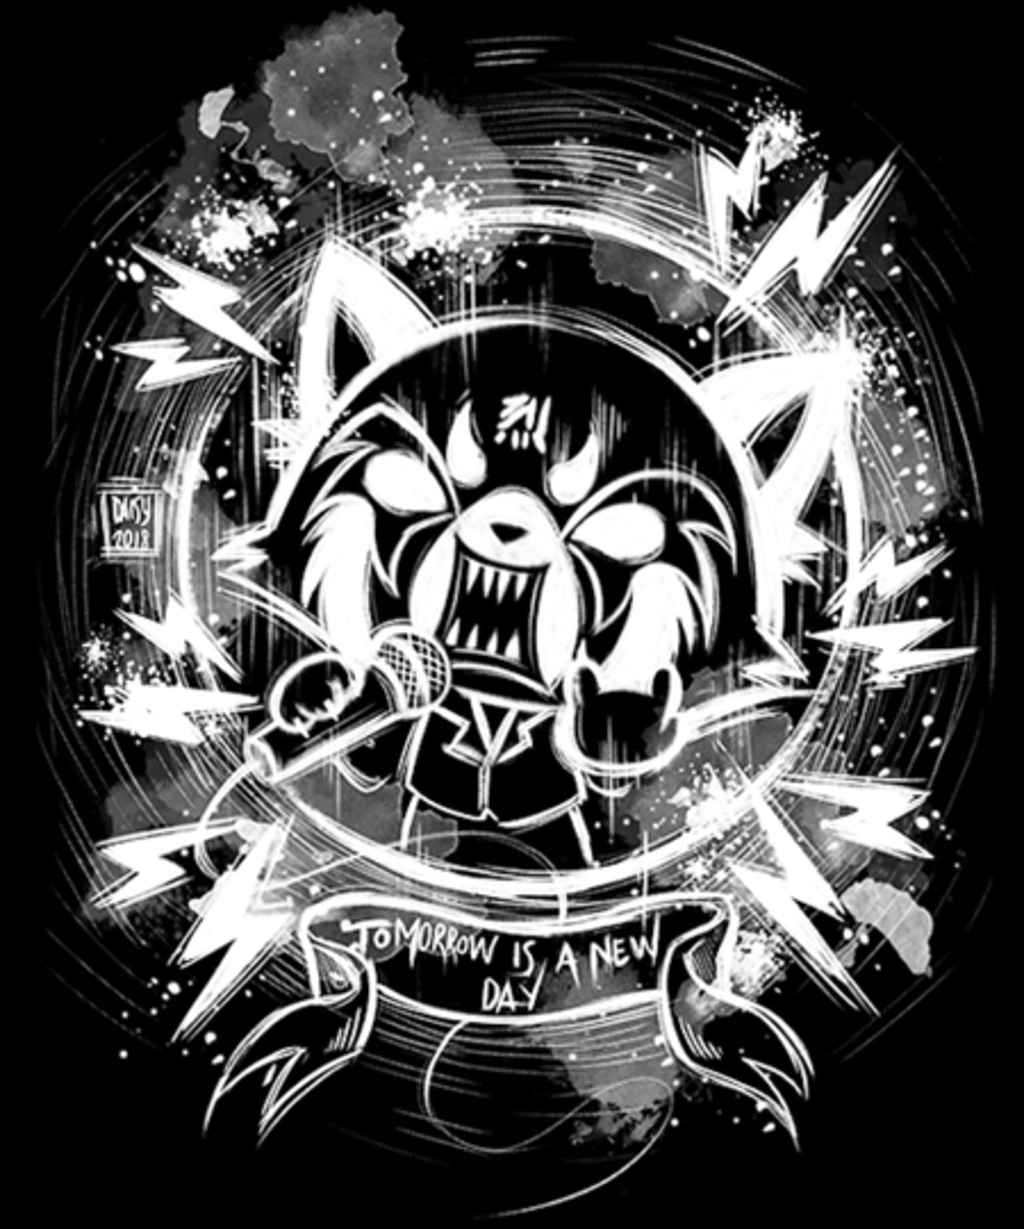 Qwertee: Tomorrow is a new day!